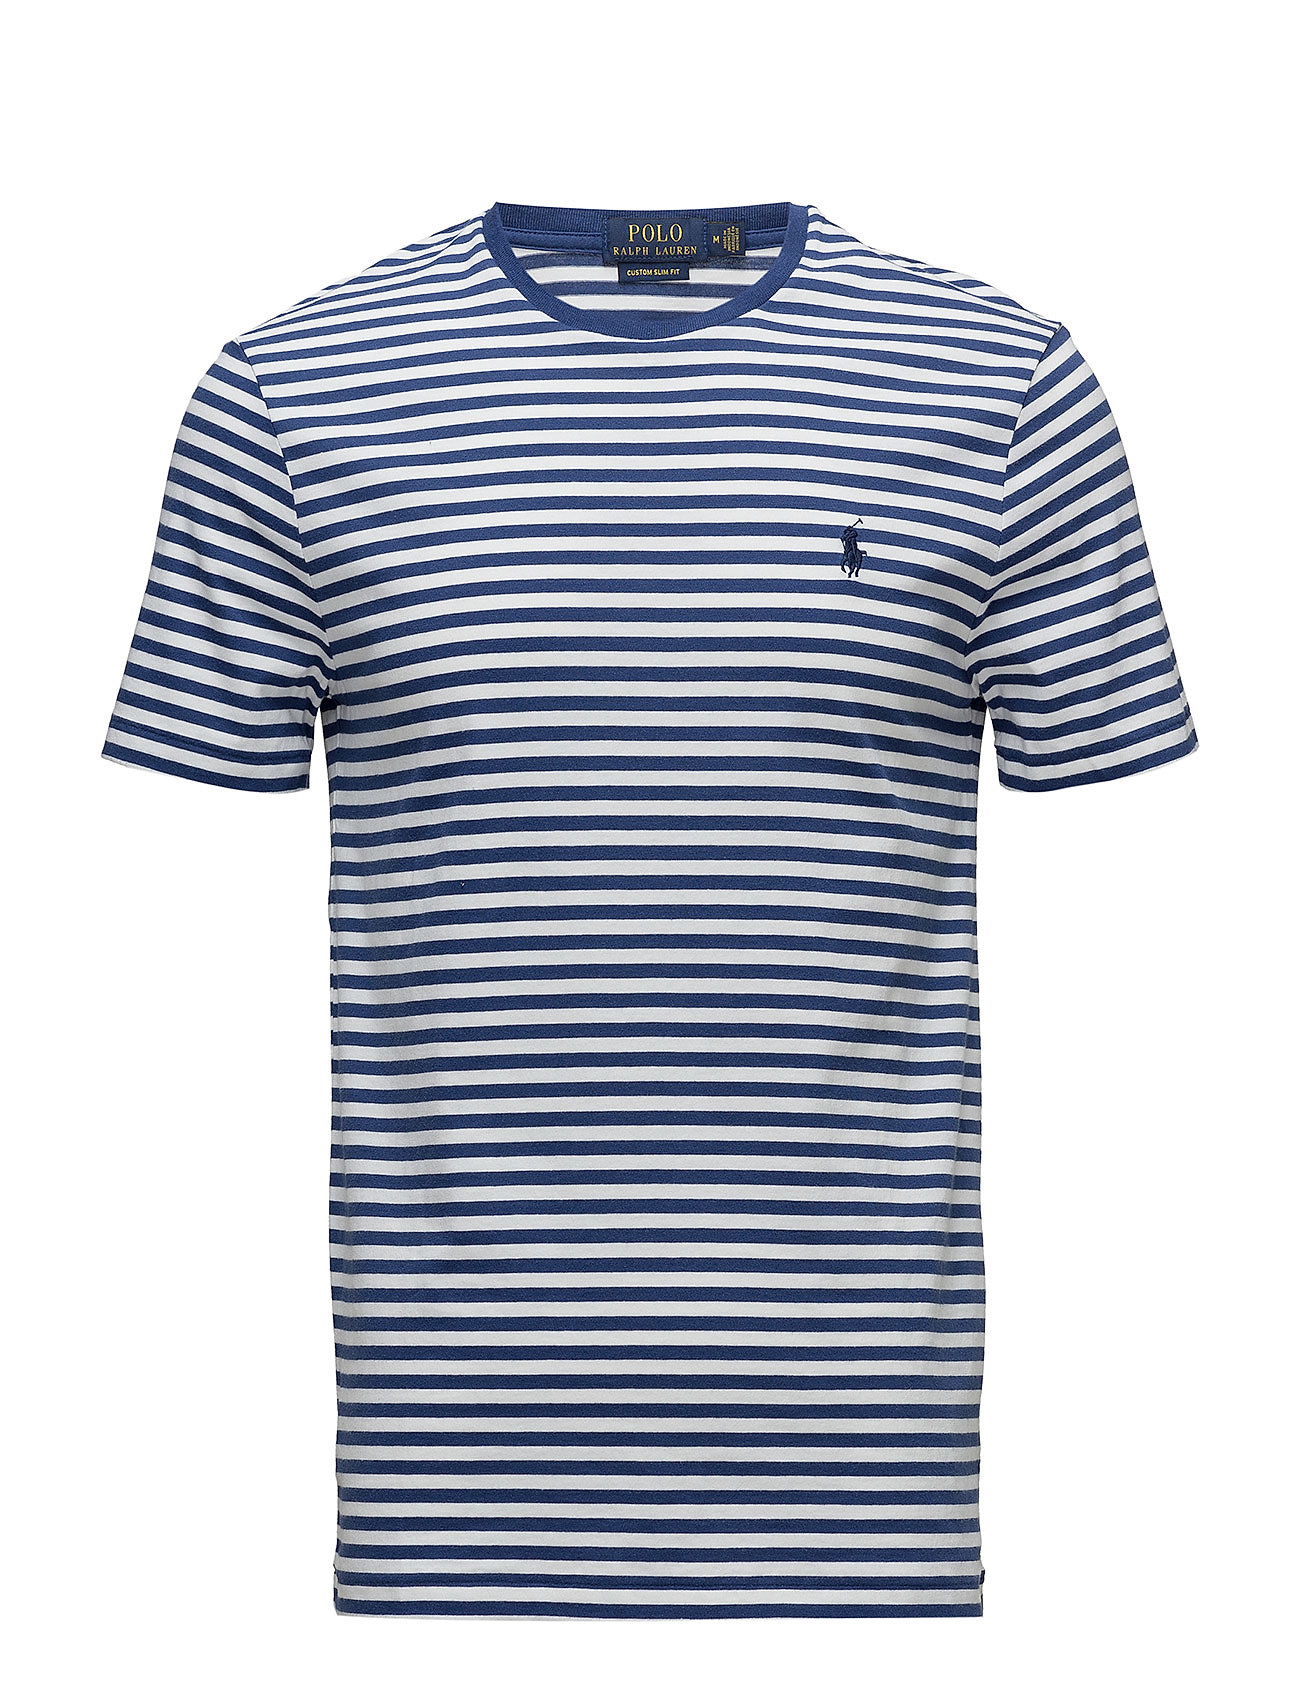 Polo Ralph Lauren Custom Slim Fit T-Shirt - ANNAPOLIS BLUE/WHITE